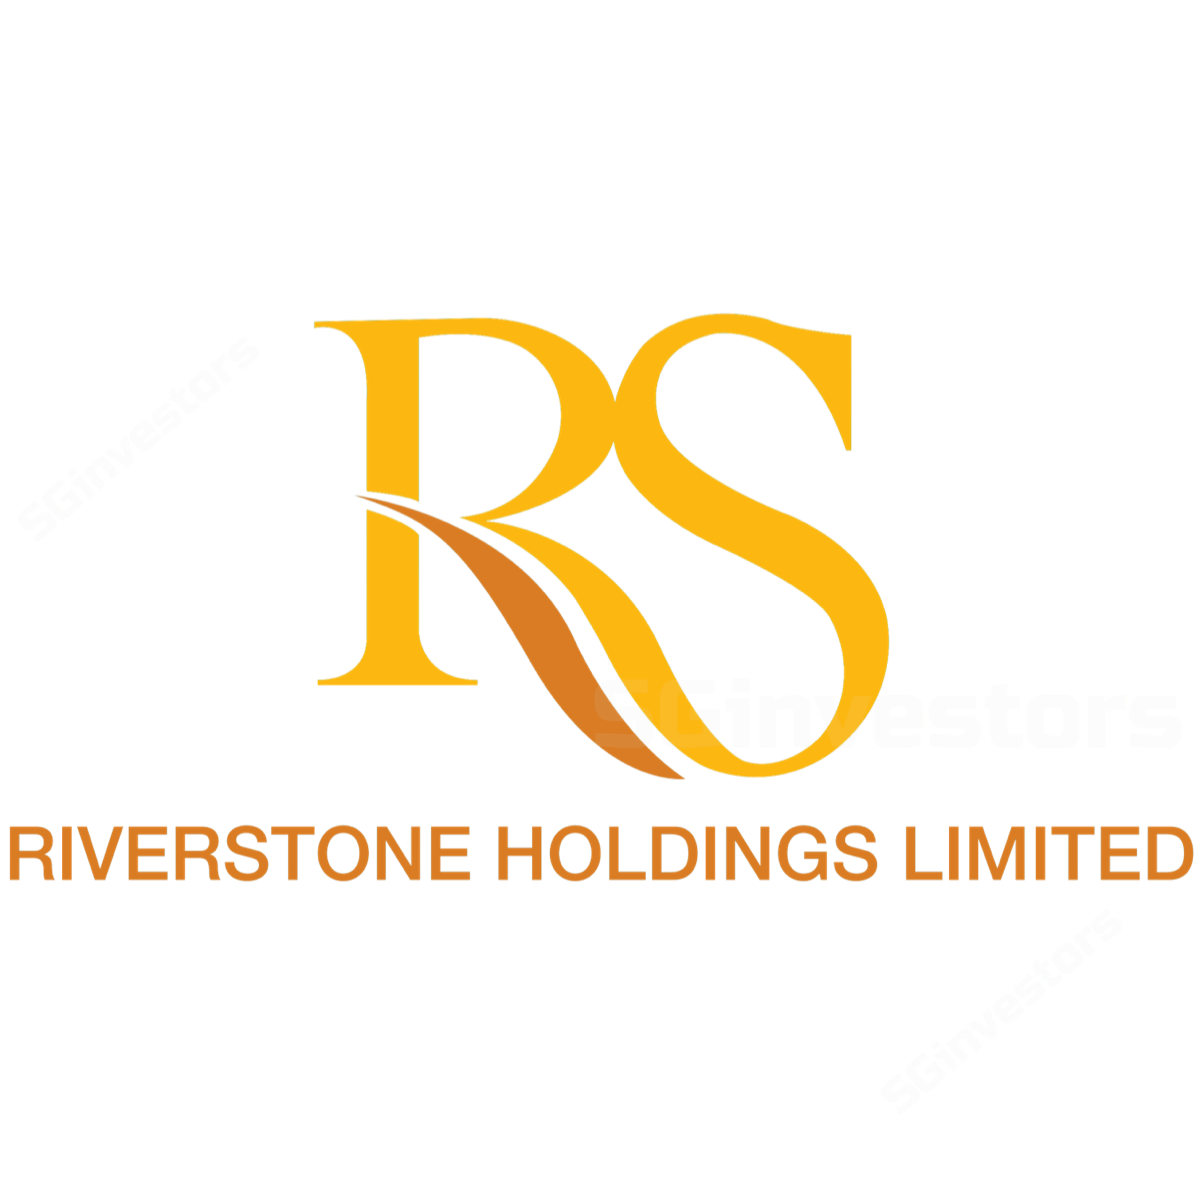 Riverstone Holdings - CIMB Research 2017-05-05: Strong Demand Driving Faster Expansion